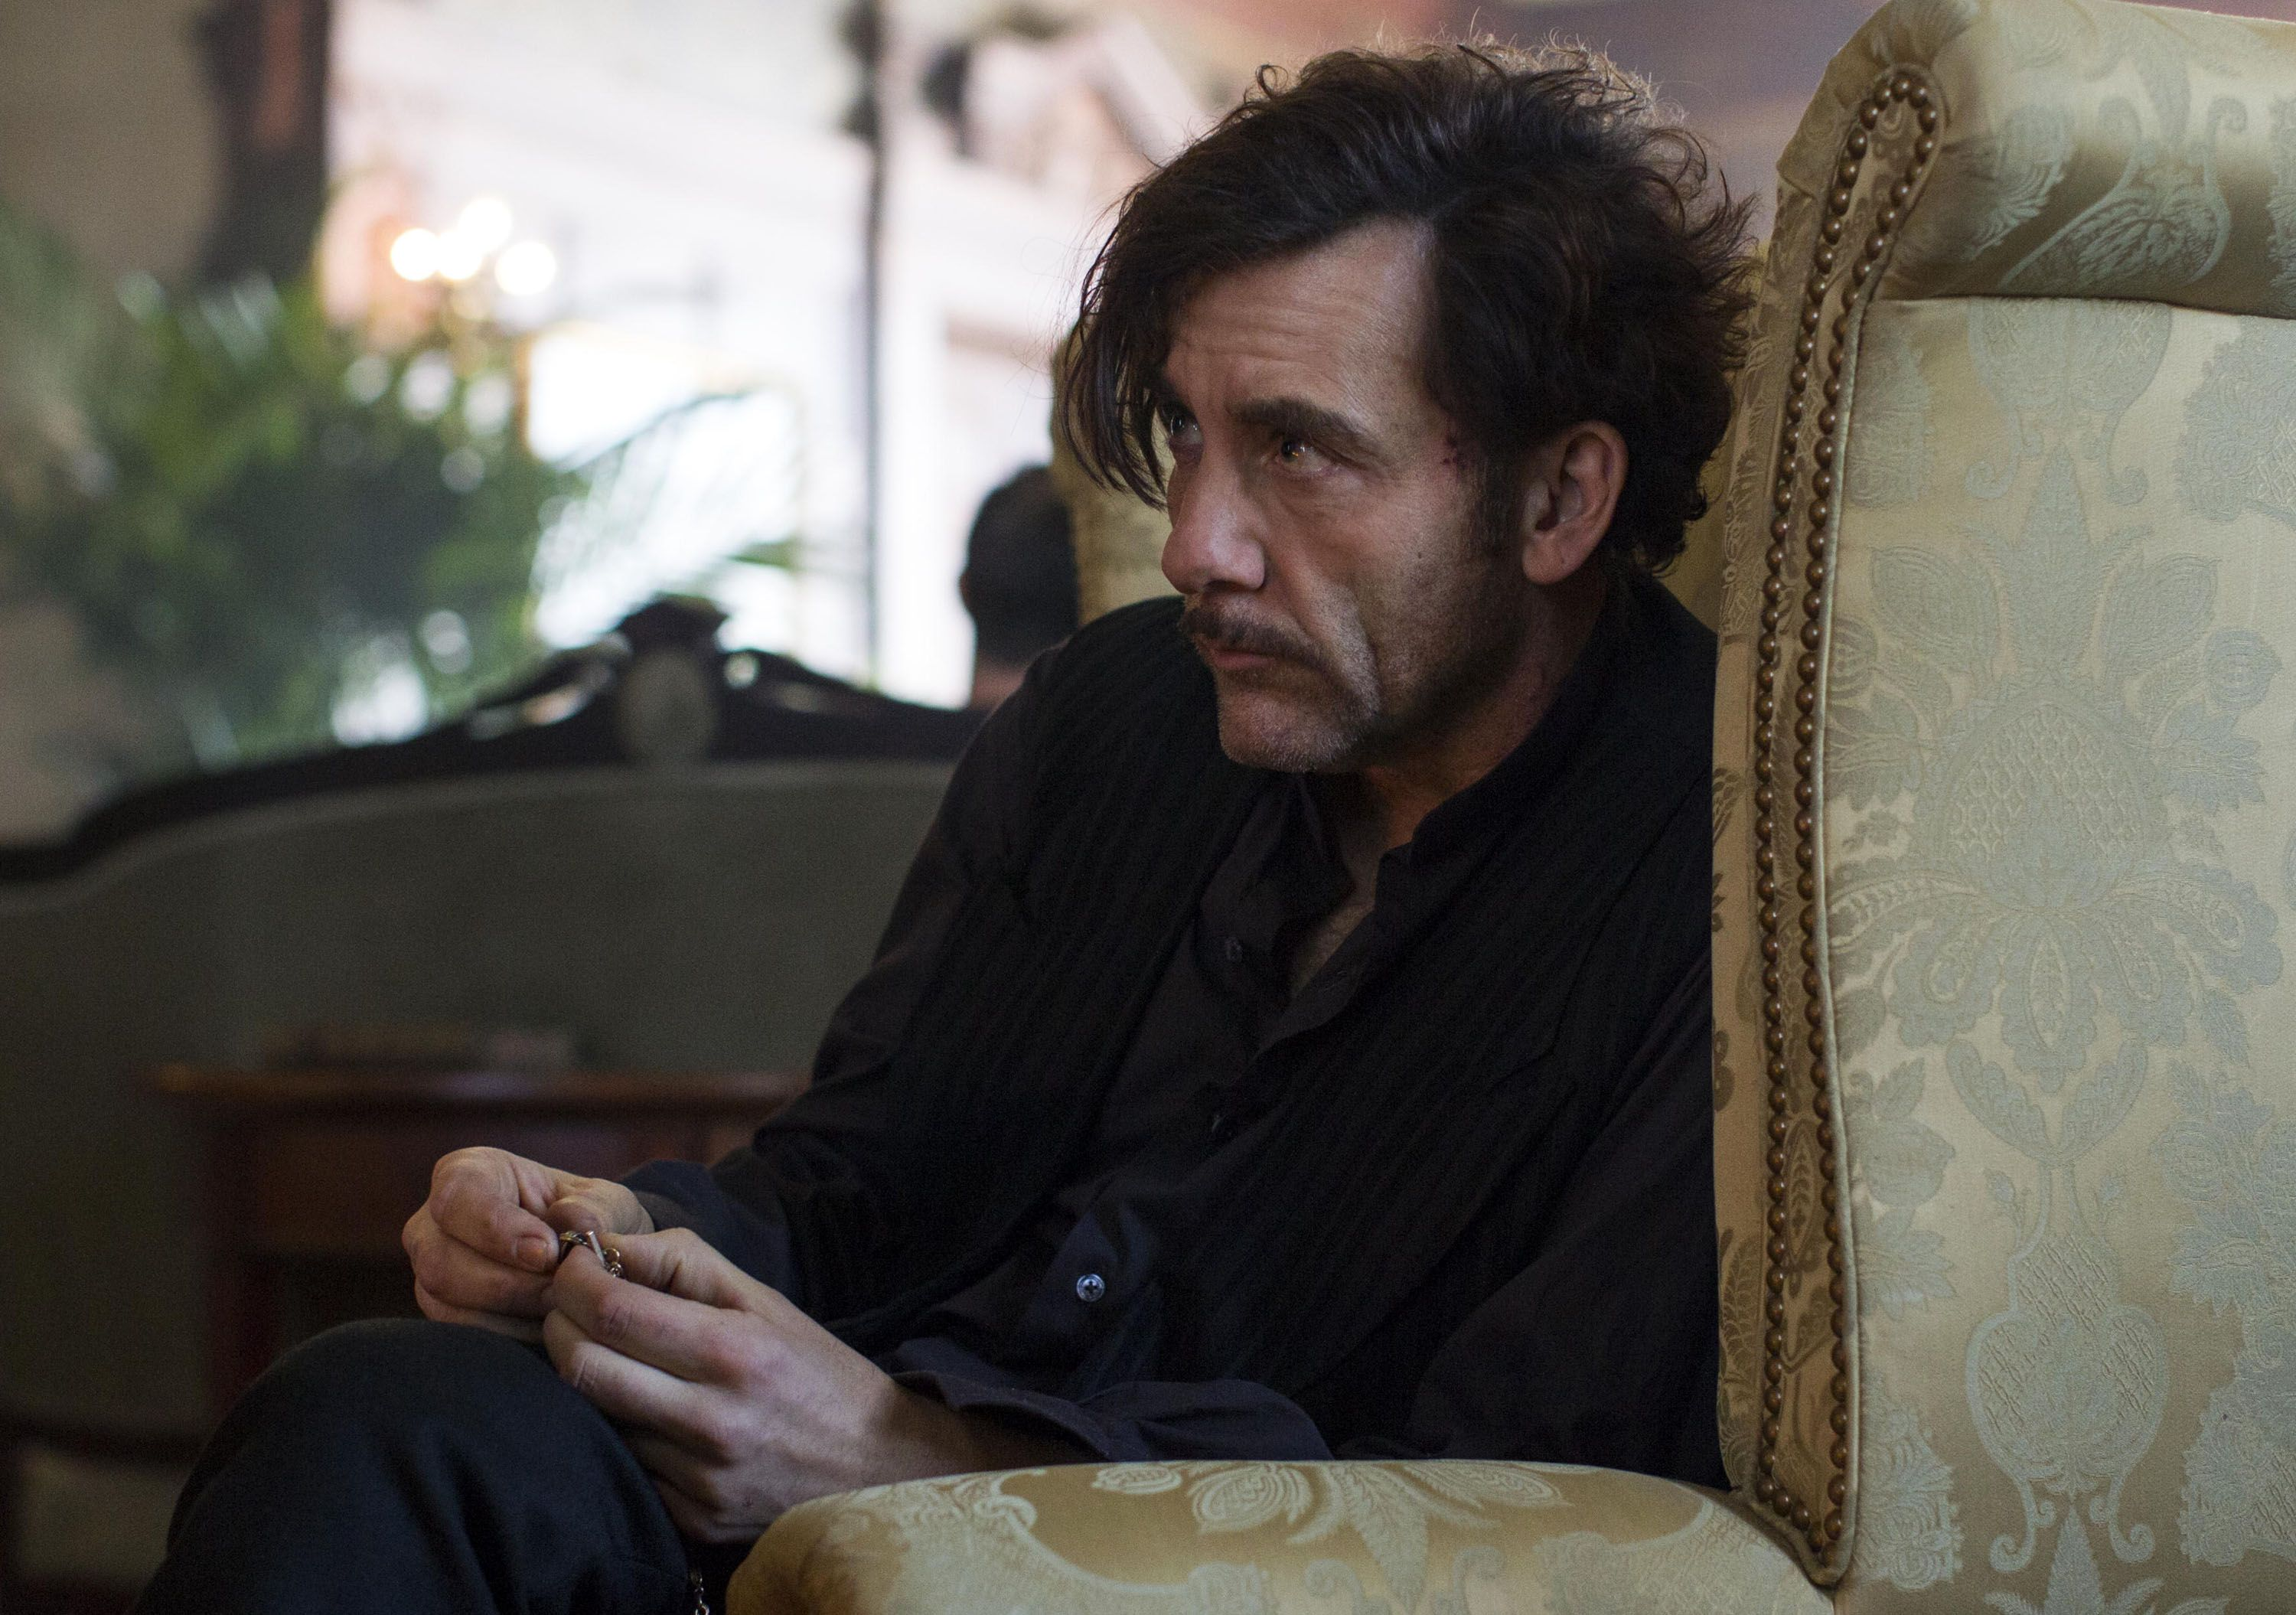 The Knick Steven Soderbergh S Six Year Plan Cast Changes The Knick Clive Owen Clive